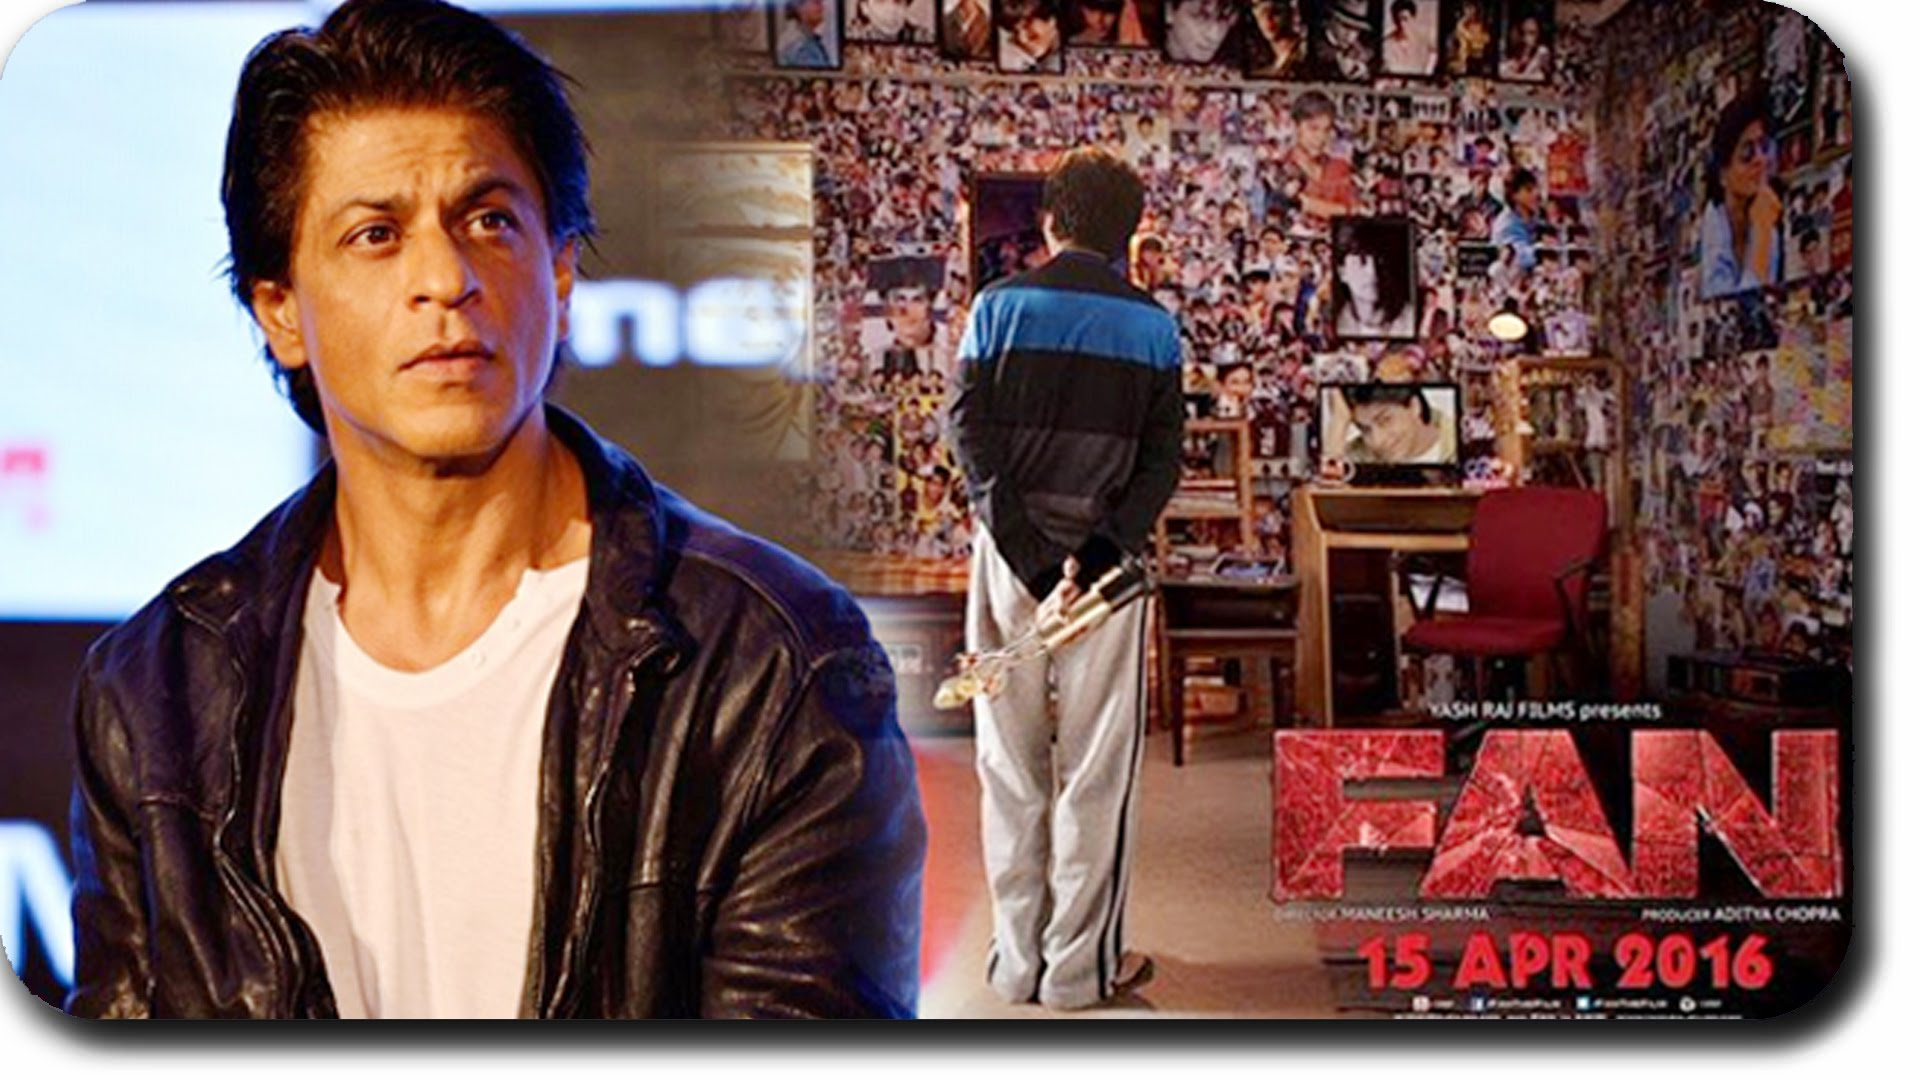 "Film: ""Fan""; Cast: Shah Rukh Khan, Waluscha de Sousa, Shriya Pilgaonkar, Deepika Amin, Yogendra Tiku, Sayani Gupta; Directed by: Maneesh Sharma; Rating: ***1/2  In a star-struck country, where hero worshipping is a norm, ""Fan"" is an insightful film looking into the obsessive, delusional behaviour of a star admirer and his love for his matinee idol. It is a reality check for both, stars and their fans.  Basically, the film is a battle of wills between Gaurav Chandna, the fan, and Aryan Khanna, the star.  Delhi-based Gaurav is the reigning heart-throb Aryan's doppelganger and a die-hard fan. It is his dream to meet his idol. So crazy is he that he follows the same trail as his idol to Mumbai and goes to any lengths to protect his star.  How he meets his star and the disillusionment that follows, forms crux of the tale.  The story written and directed by Maneesh Sharma, is uncomplicated, but of course exaggerated and zooms into a noire zone, pushing the boundaries of acceptability. The first half of the film is well-balanced and taut. It is the second half that is far-fetched, and though thrilling, strains.  Although treated as a dramatic thriller, the film is more of drama than a thriller. Narrated from Gaurav's point of view, the film brings to fore, the pragmatic issues of stardom and how stars deal with their crazy fans. Your heart bleeds for Gaurav, but at the same time makes you realise that one needs to be rational.  The pace of the film though racy, drags in parts, especially in the stretched action sequences, which is well-choreographed.  With well-etched characters, the performance of each actor is noteworthy. The film belongs to Shah Rukh Khan, who in a dual role, is a treat for his fans. In both his characters, Gaurav and Aryan, he is distinct in his sartorial style, speech and mannerisms. With his overt histrionics, sincerity and simplicity, his obsession is palpable. He steals the show as Gaurav. As Aryan, Shah Rukh Khan is merely an extension of himself.  Of the rest of the supporting cast, Deepika Amin and Yogendra Tiku, as Gaurav's parents are fairly competent. Waluscha de Sousa as Aryan's wife and Shriya Pilgaonkar as Gaurav's love interest Neha, in small roles make their presence felt.  With great production values, the sets are realistic and the locales impressive.  Visually, Director of Photograohy (DOP) Manu Anand's images are impressive. He captures the hysteria of the fans and their gawking at their star, with precise acuteness. His frames seamless mesh with the computer generated images. It is in the initial scenes where the shots with grainy images are chaotic and thus, disorienting, but once the narration settles, the visuals are realistic and appealing.  Namrata Rao's razor sharp edits are crisp and note-worthy. She aptly layers the visuals and Andrea Guerra's background score to make the film a sound and visual delight.  Interestingly, despite with no songs in the narration, ""Fan"" keeps you entertained with Shah Rukh's gusty performance."